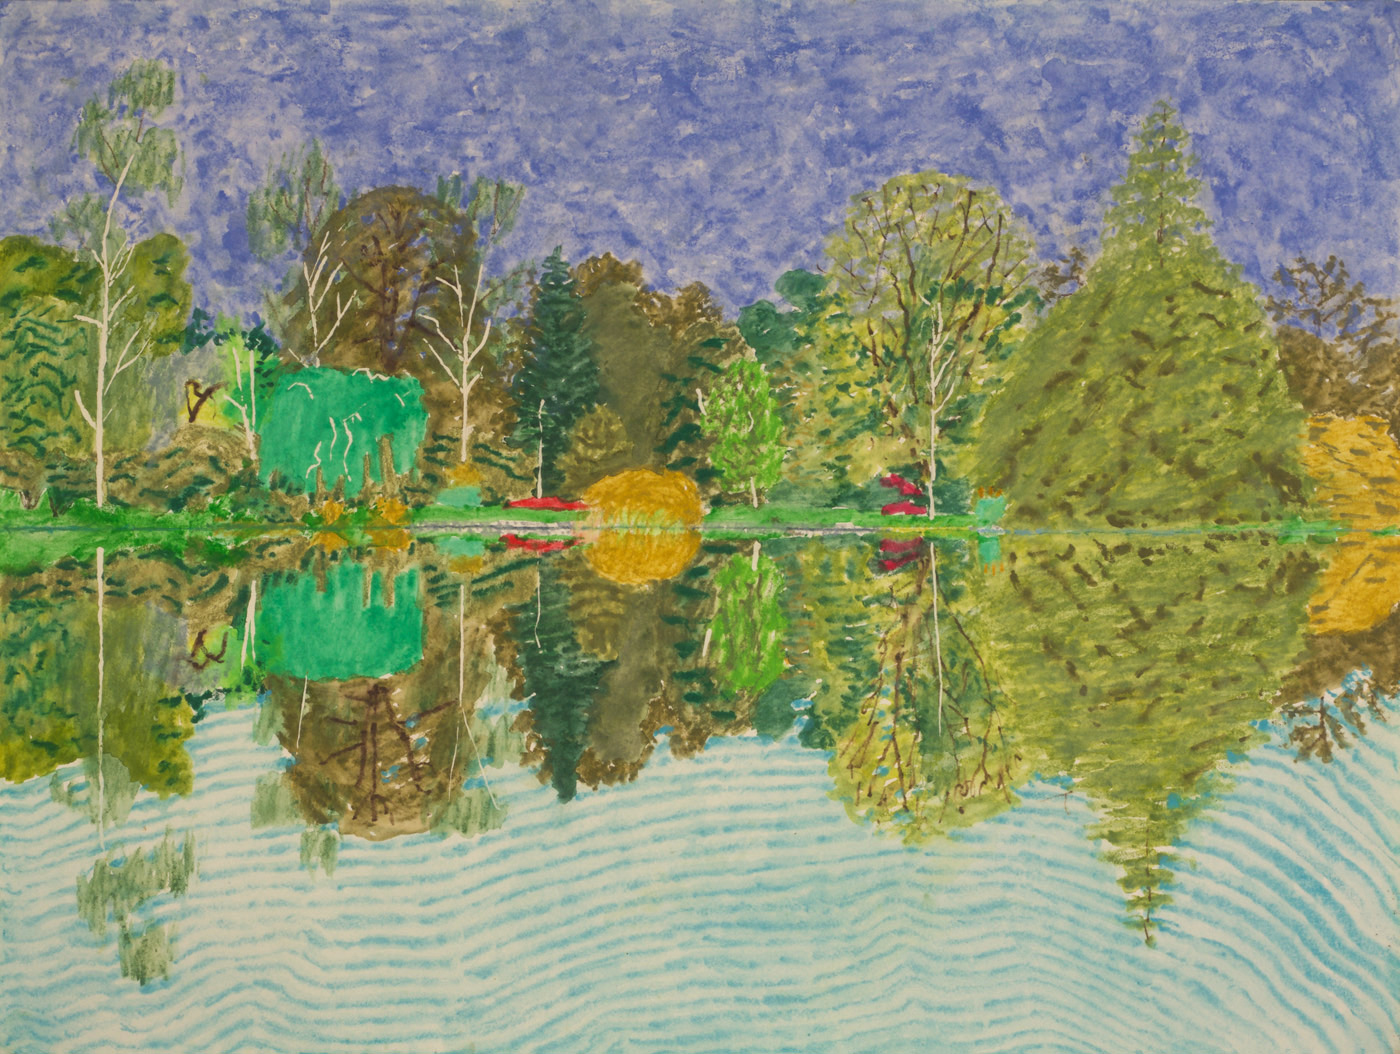 Edmund Berg archive. First Lake, Sheffield Park Garden, Sussex Weald 17th and 19th September (Watercolour, pencil and crayon) 2002.